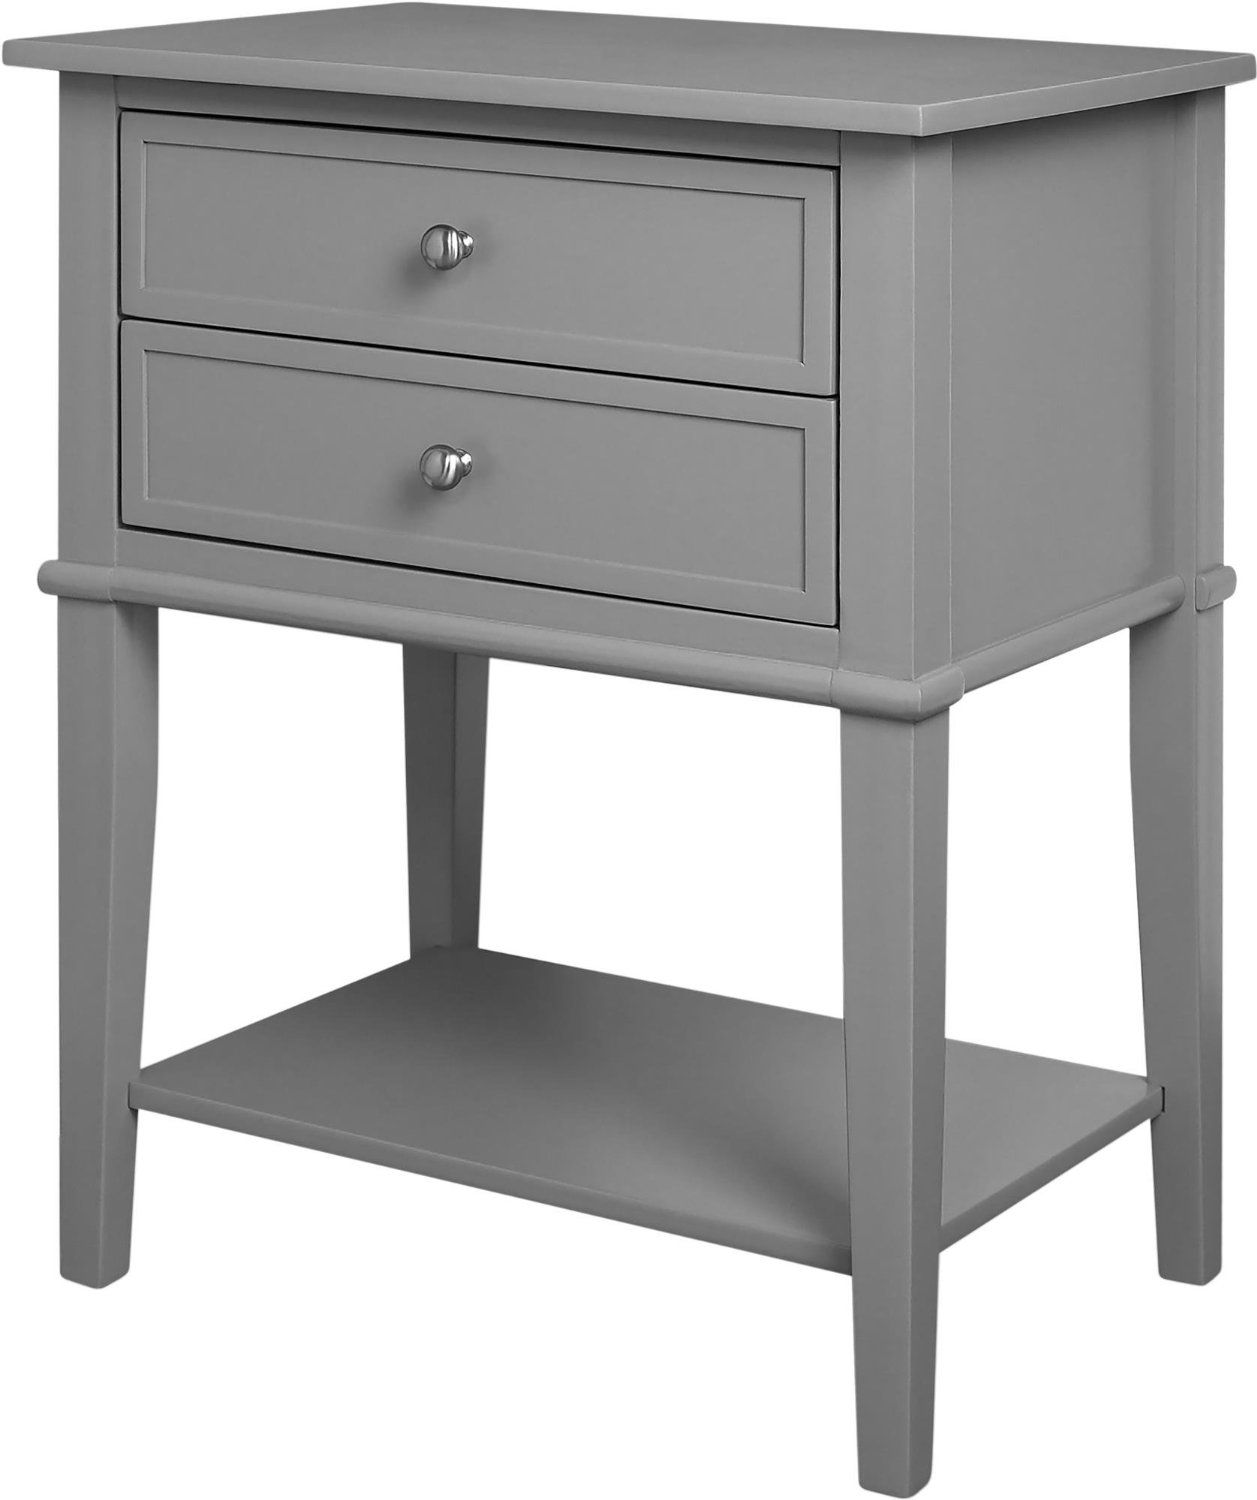 $104.10 Amazon.com: Altra Franklin Accent Table With 2 Drawers, Gray:  Kitchen